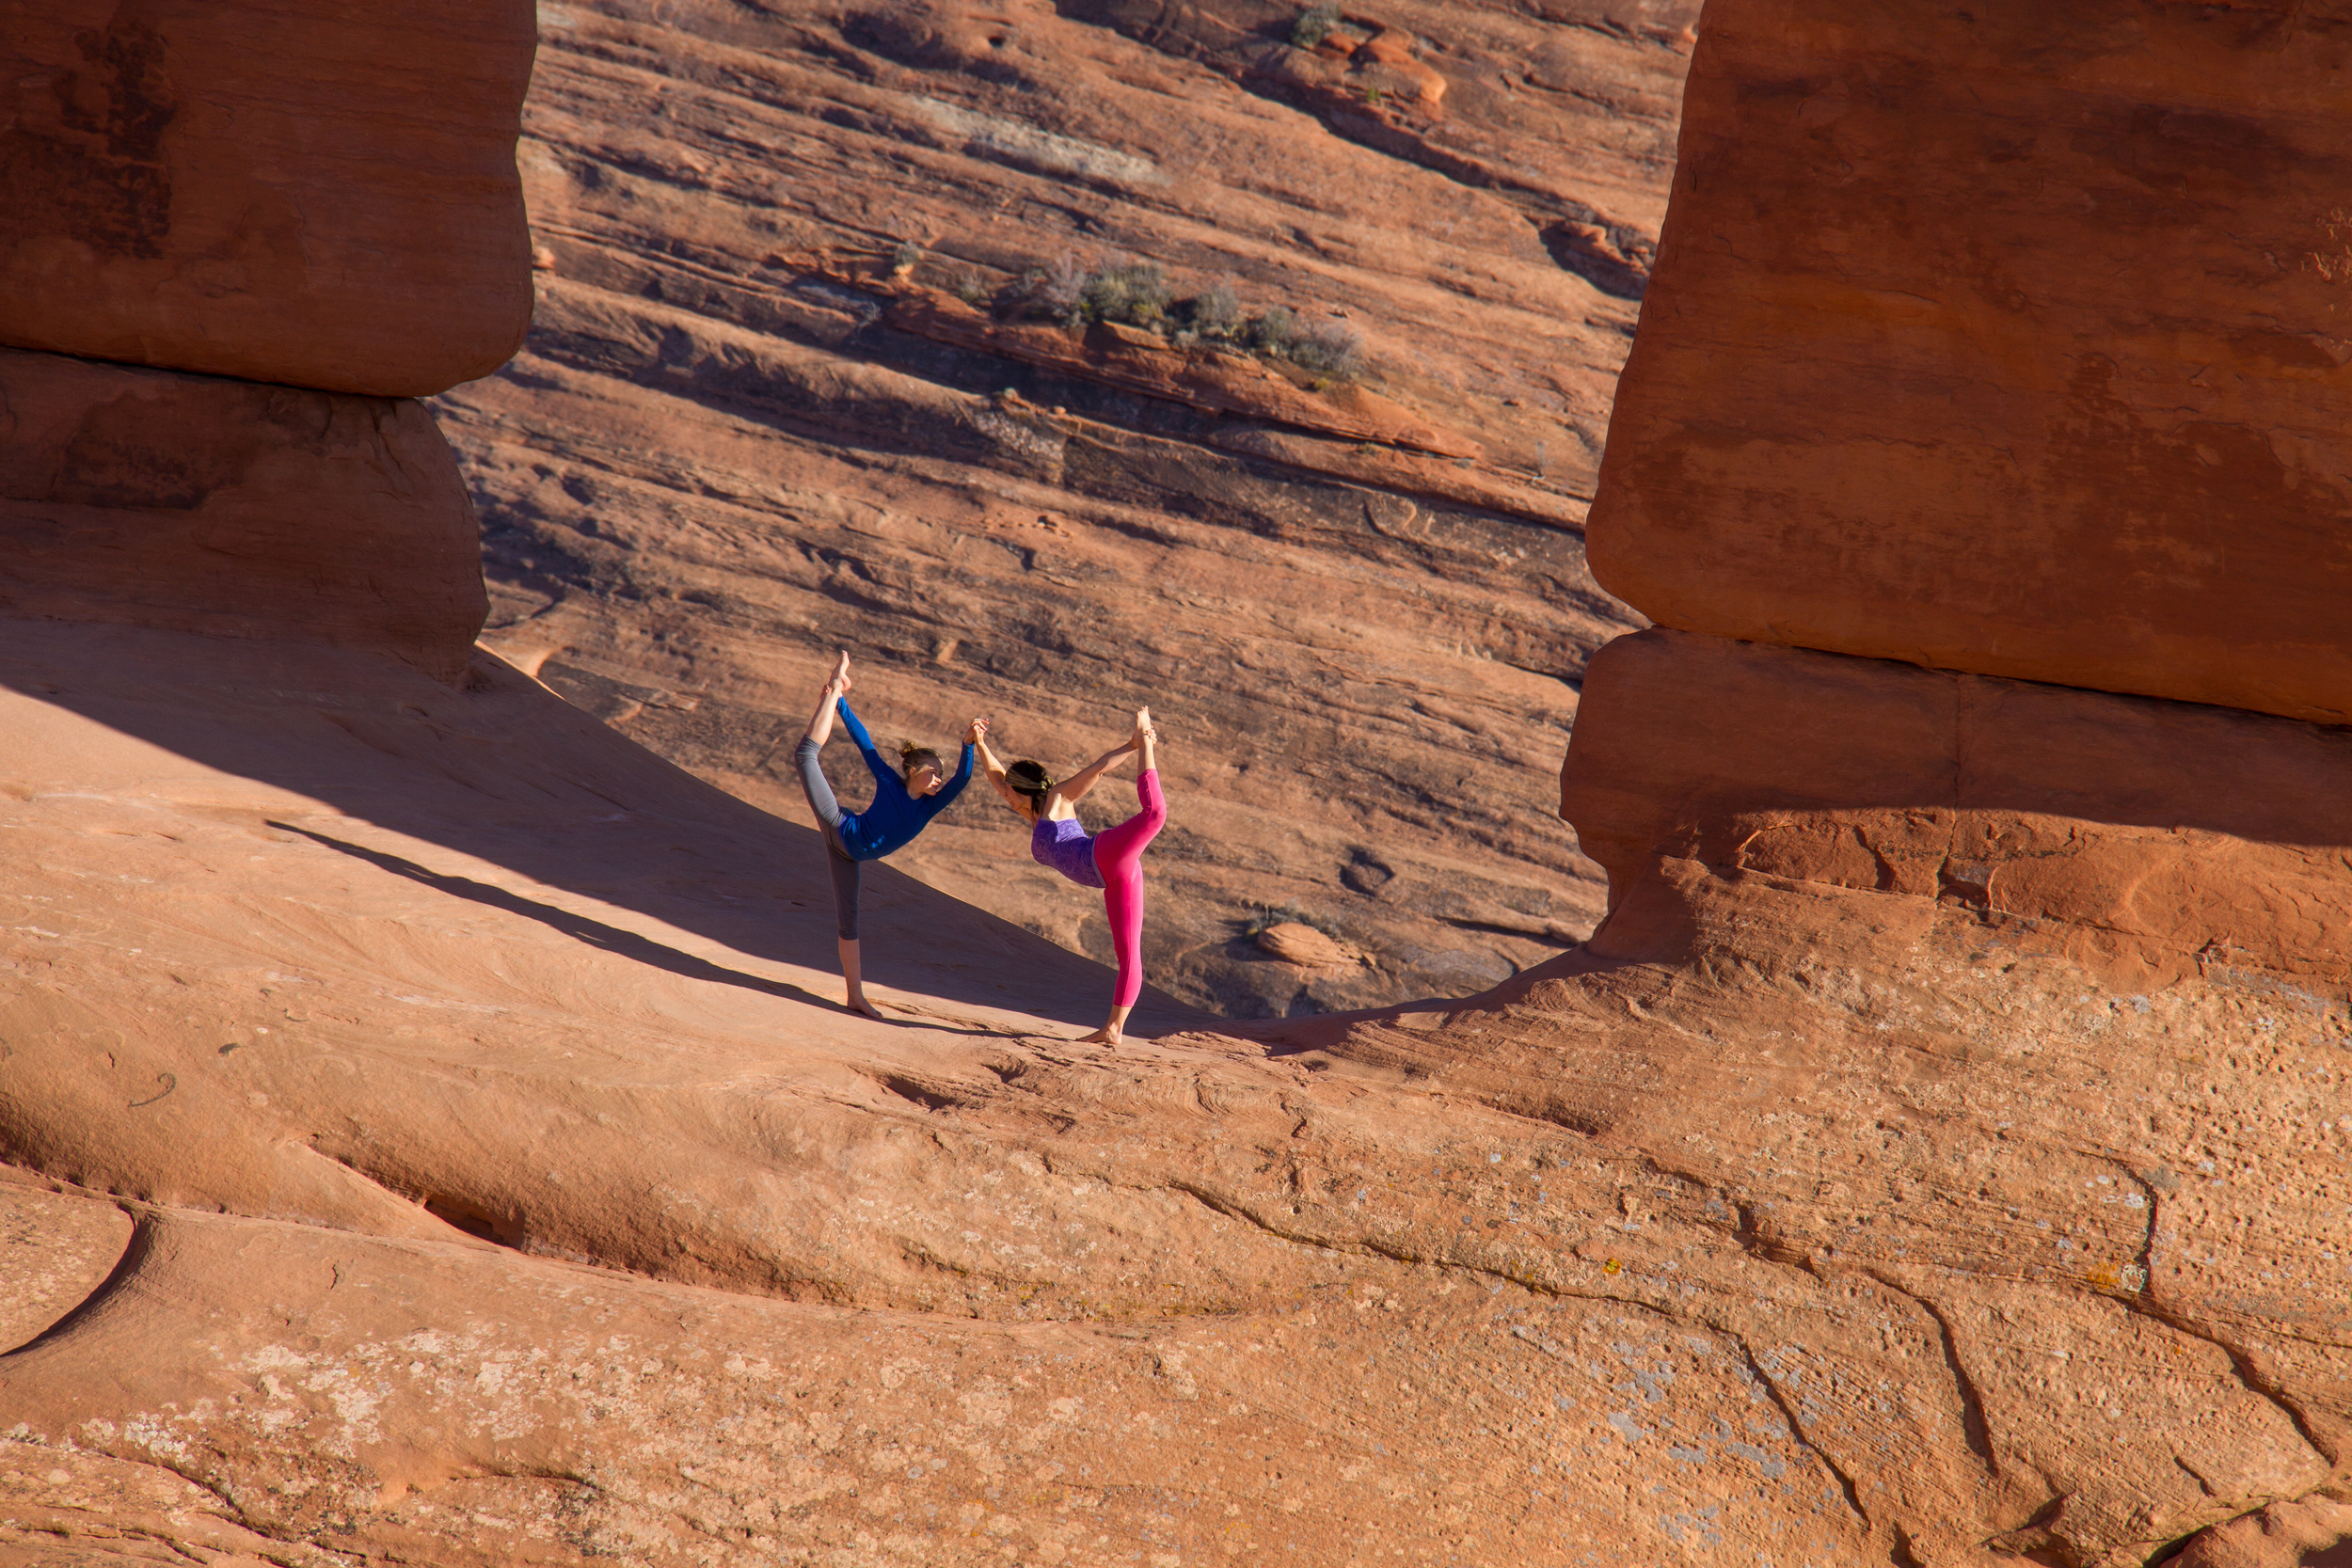 Mother and daughter duo striking a pose under the Delicate Arch in Arches National Park in Moab, Utah.